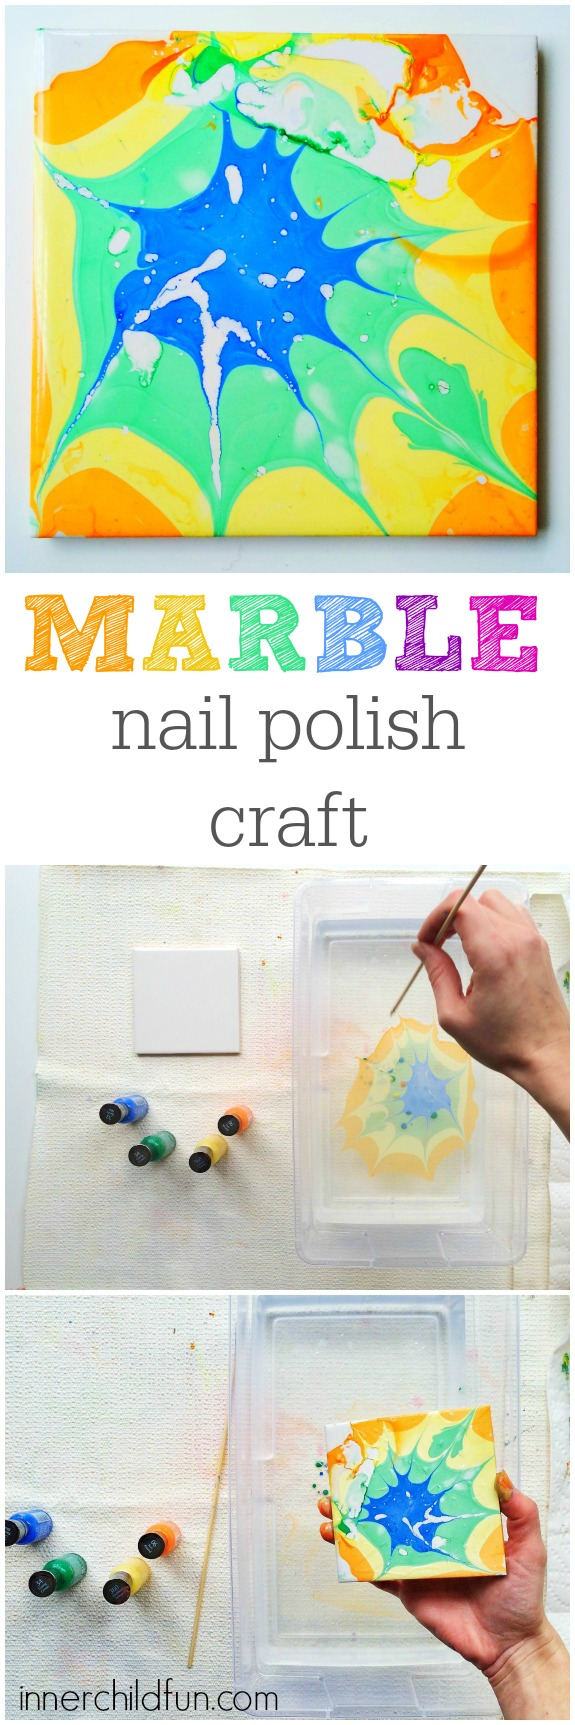 Marble Nail Polish Craft - Inner Child Fun